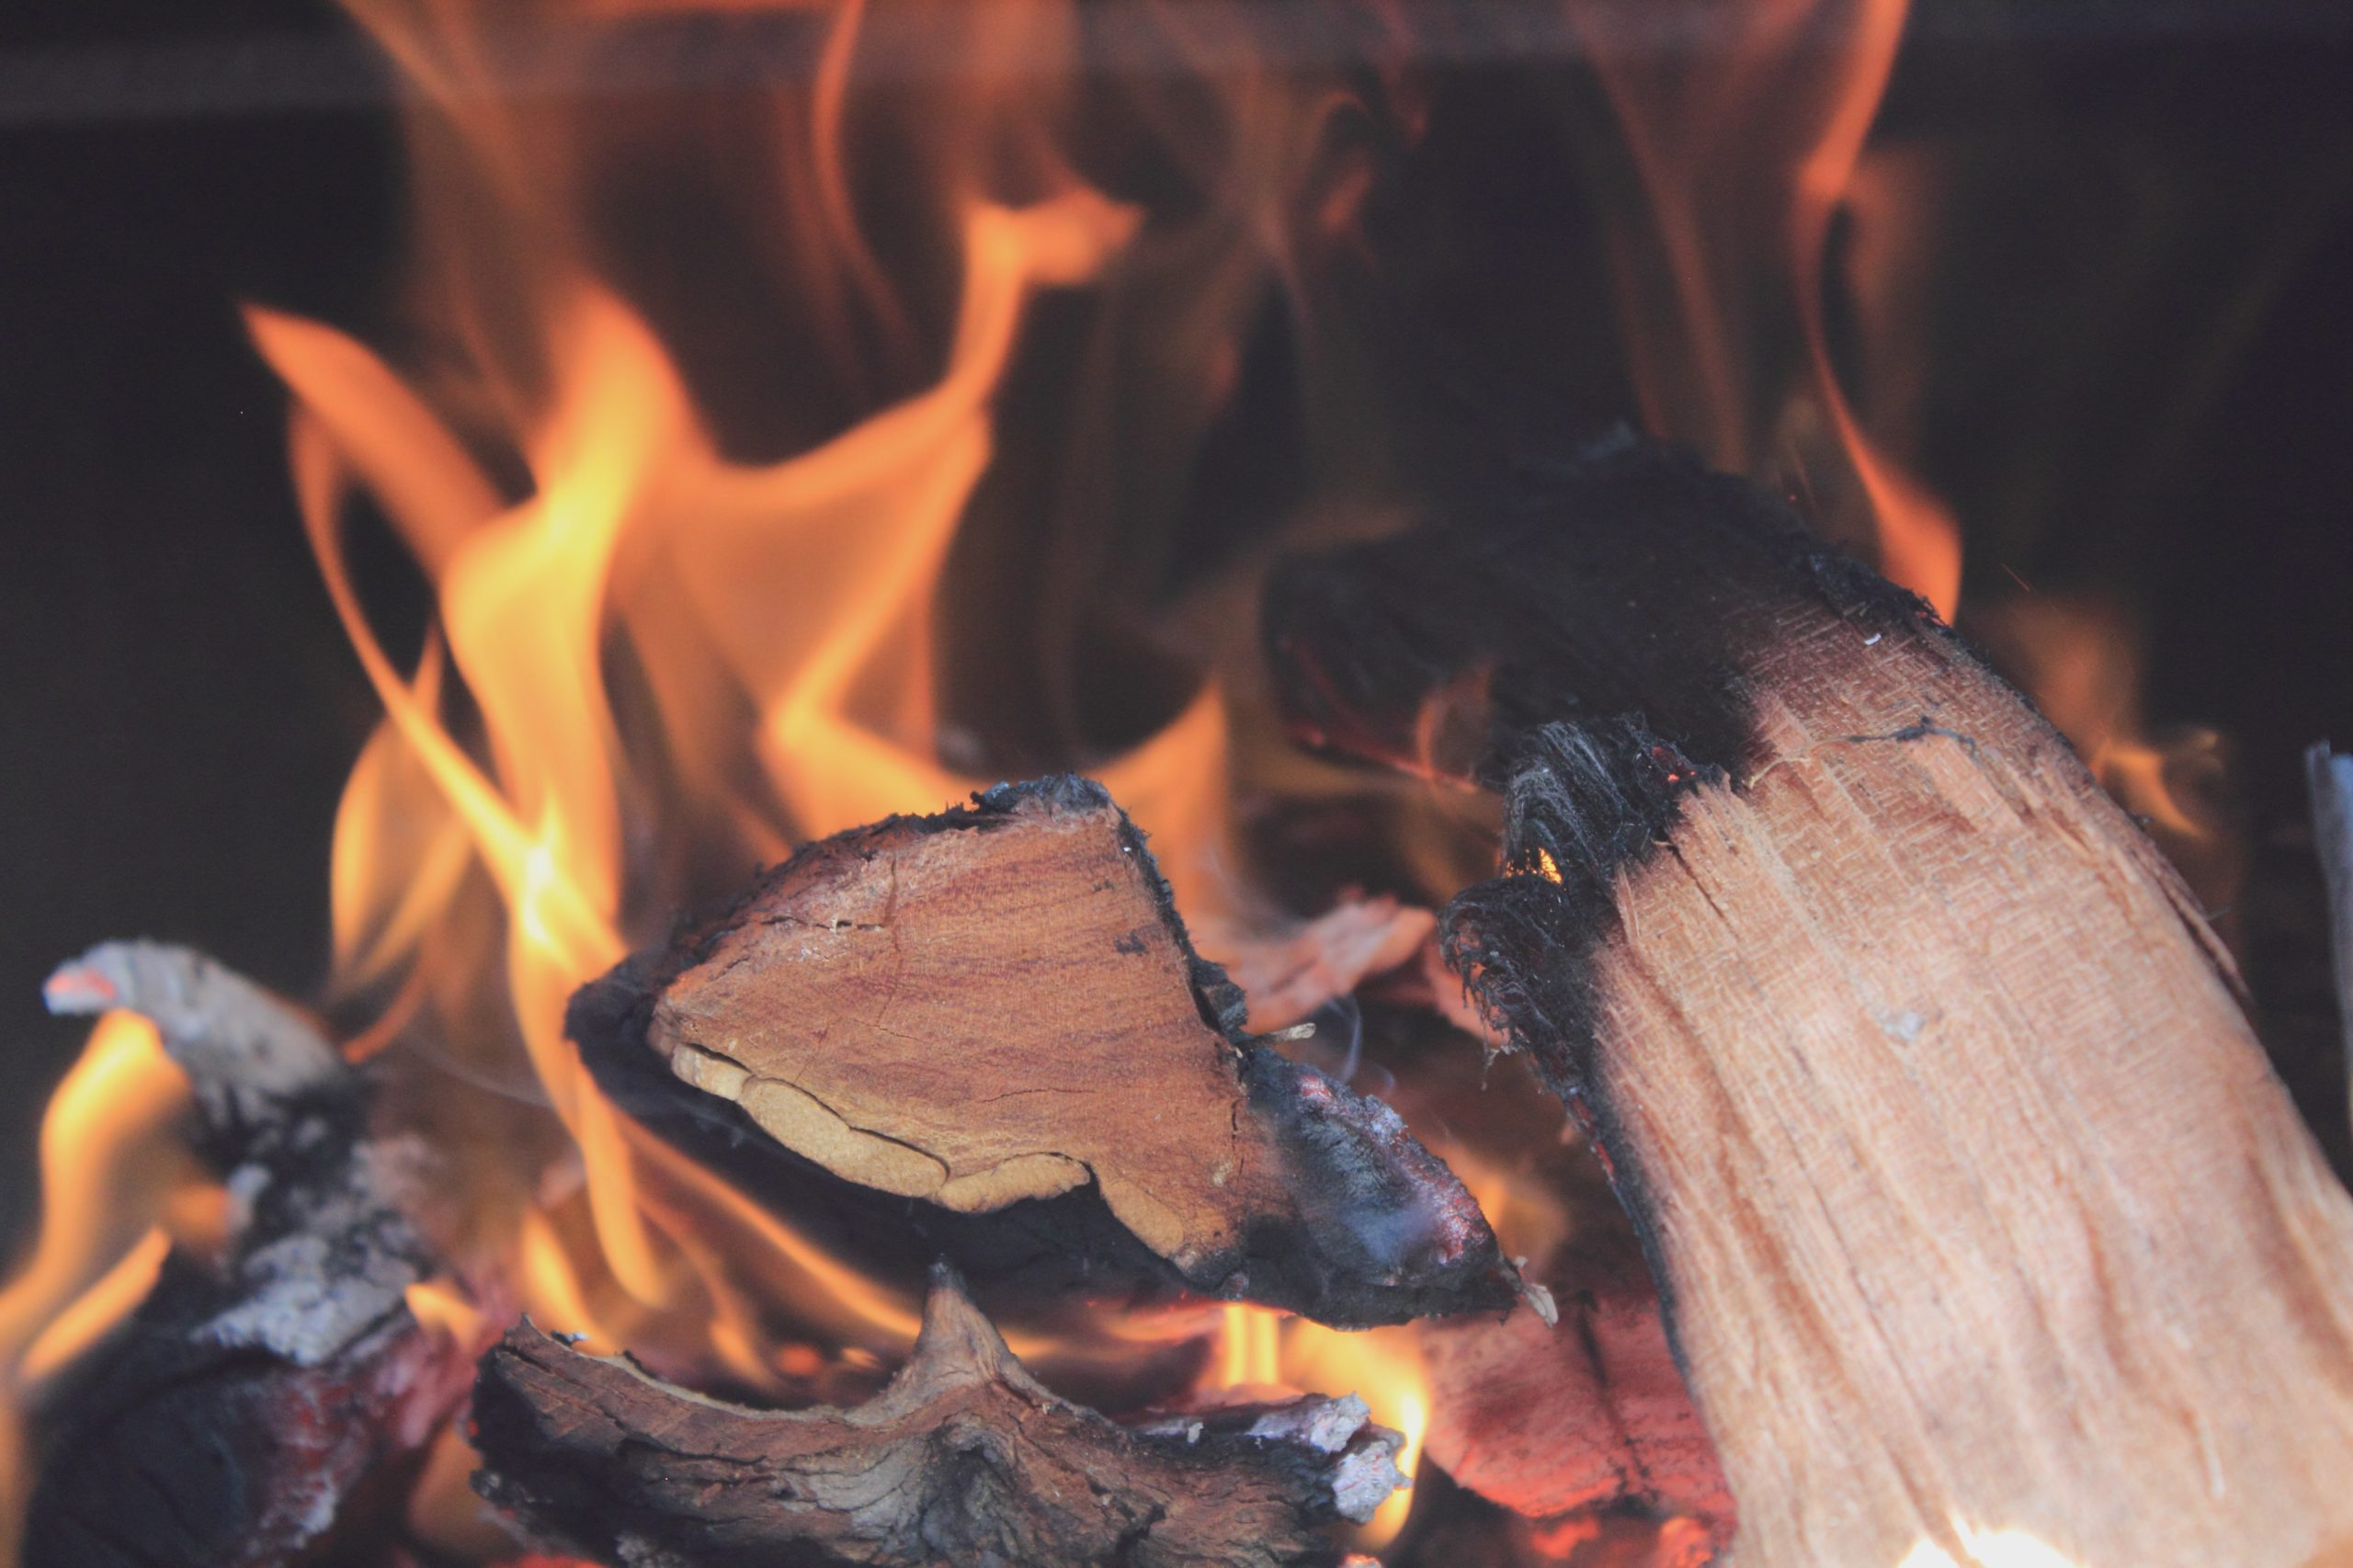 Burning ceremonies to heal and release